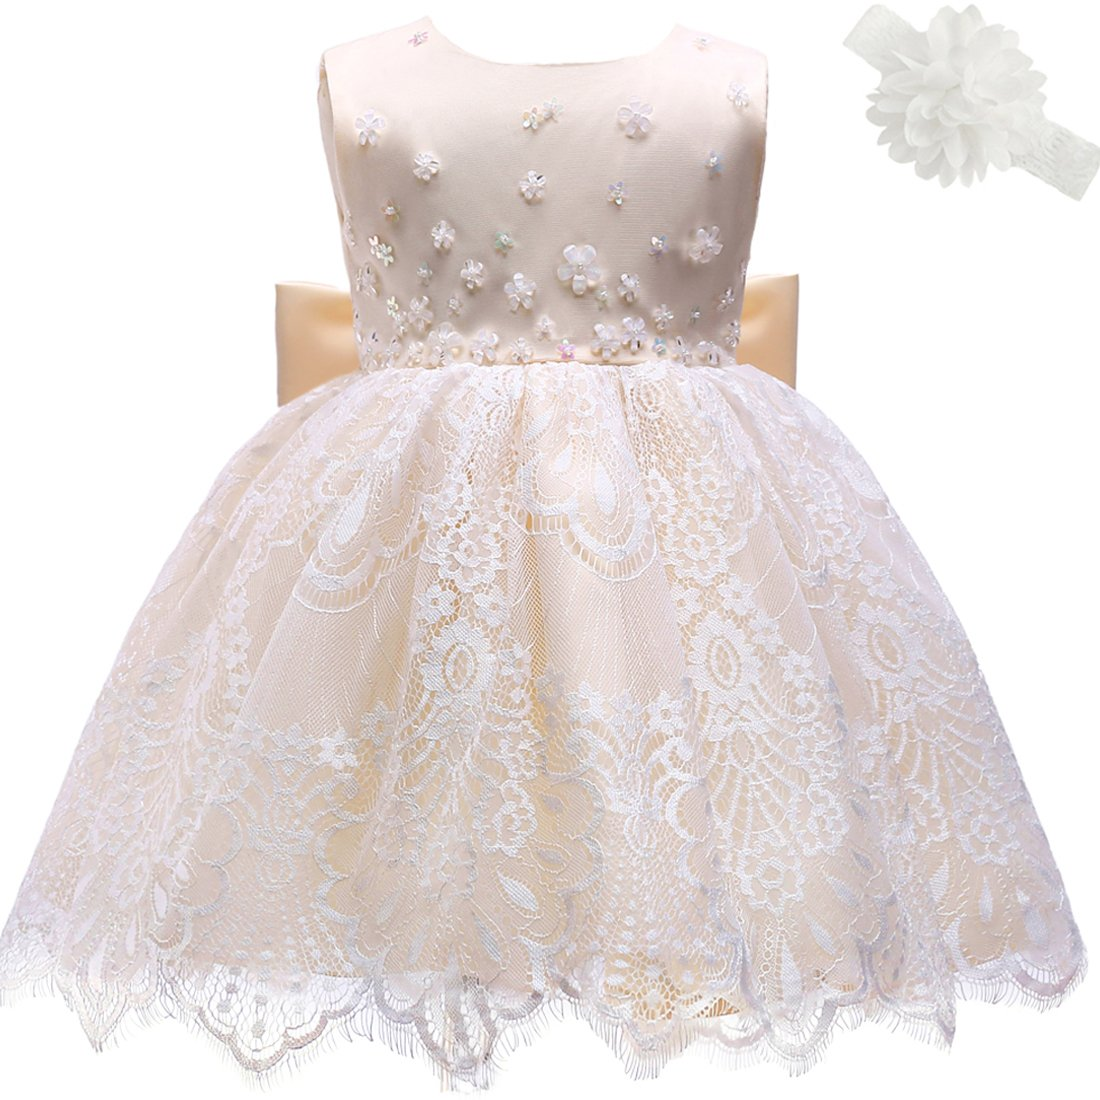 Moon Kitty Baby Girl Newborn 3D Flower Party Dresses Pagent Lace Dress Gown for Baby Girls  Champagne 18M/15-20Month